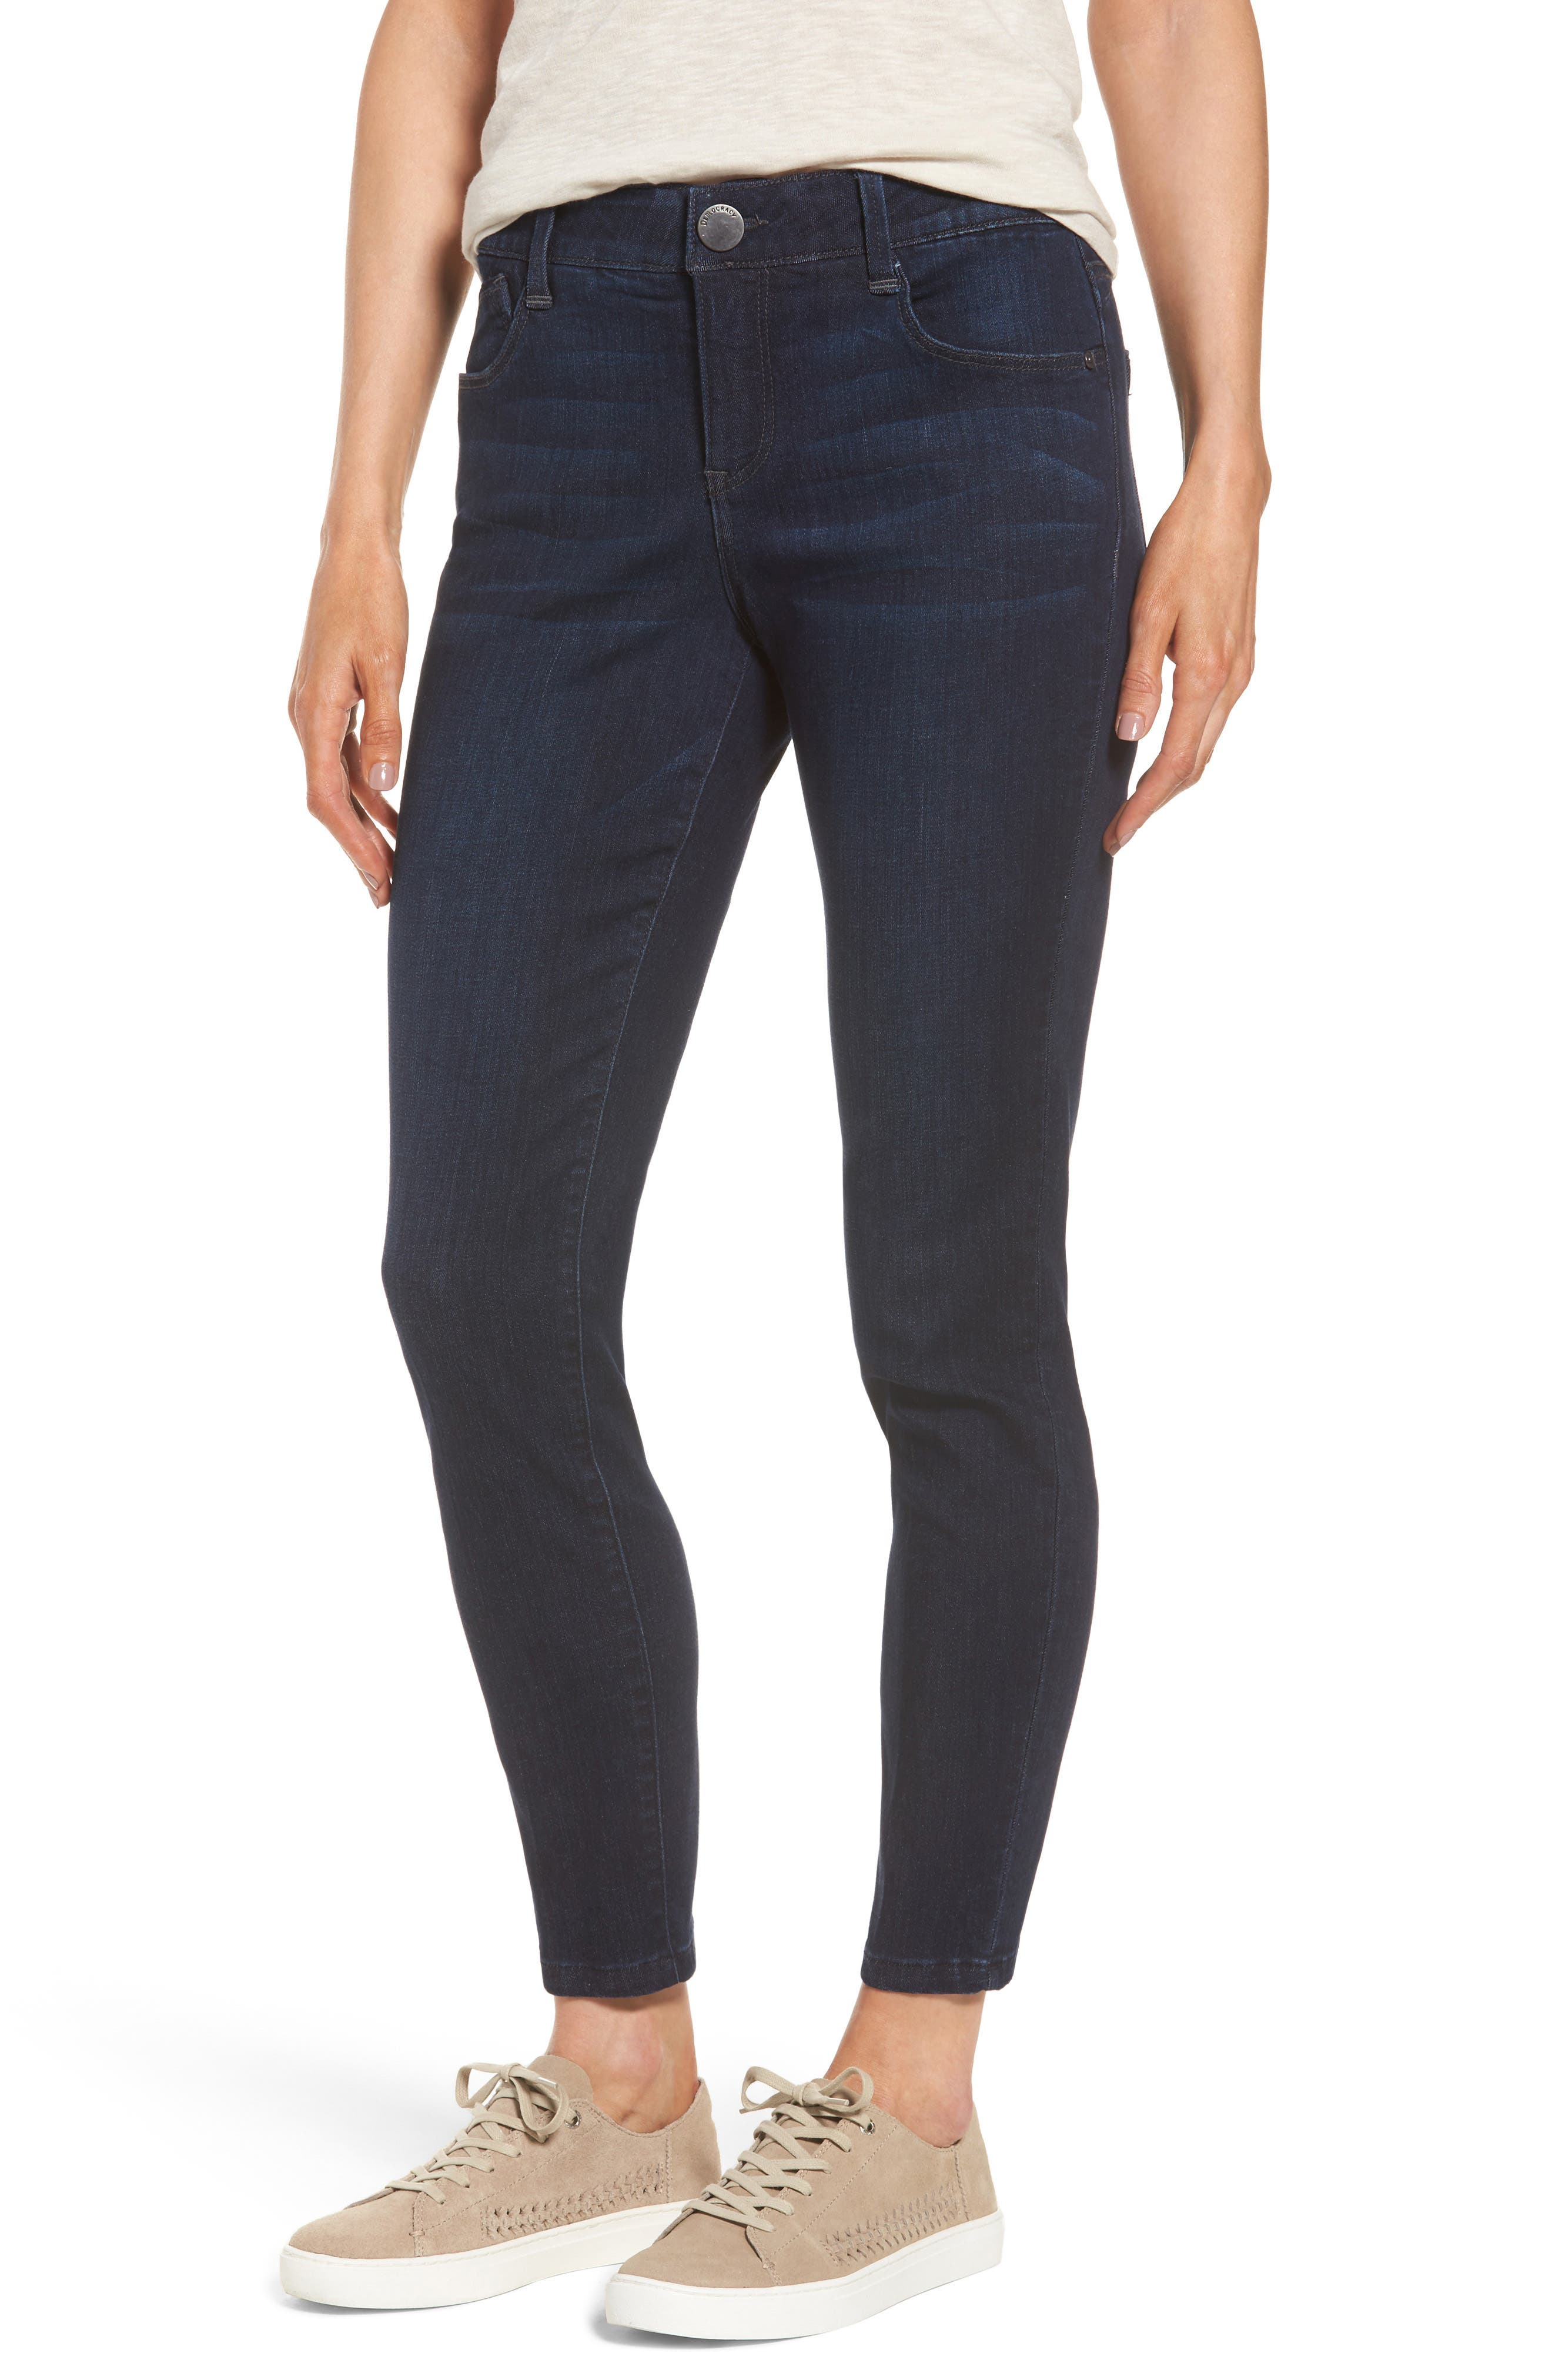 Ab-solution Ankle Skimmer Jeans,                         Main,                         color, 402